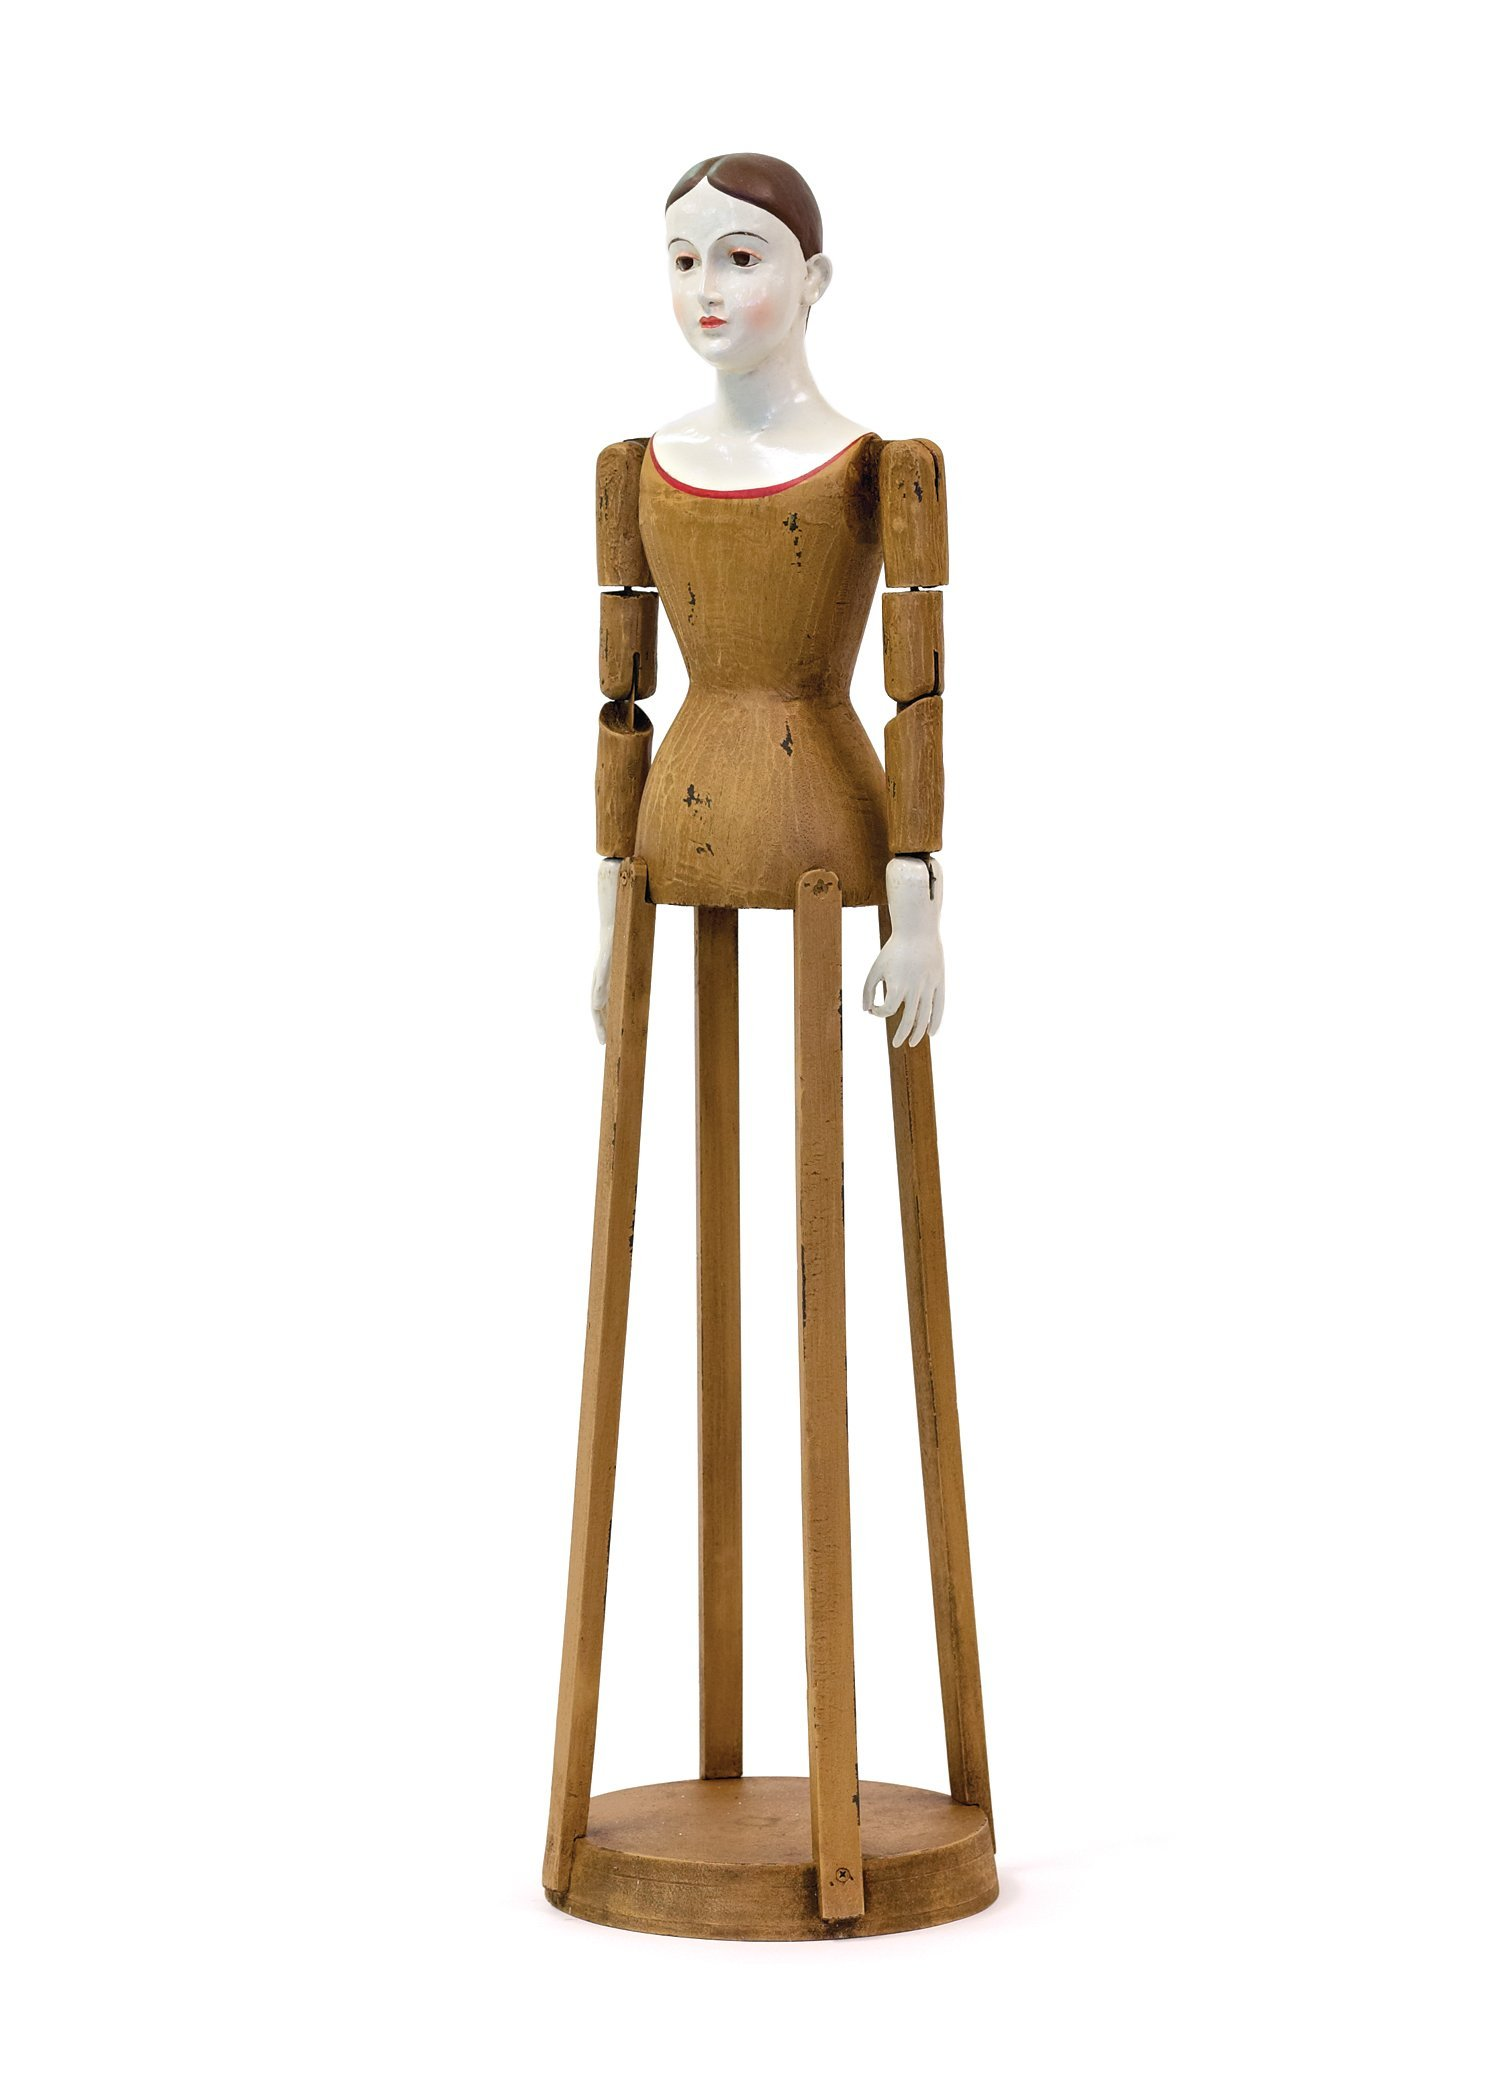 Tan Manikin by Halt Decor